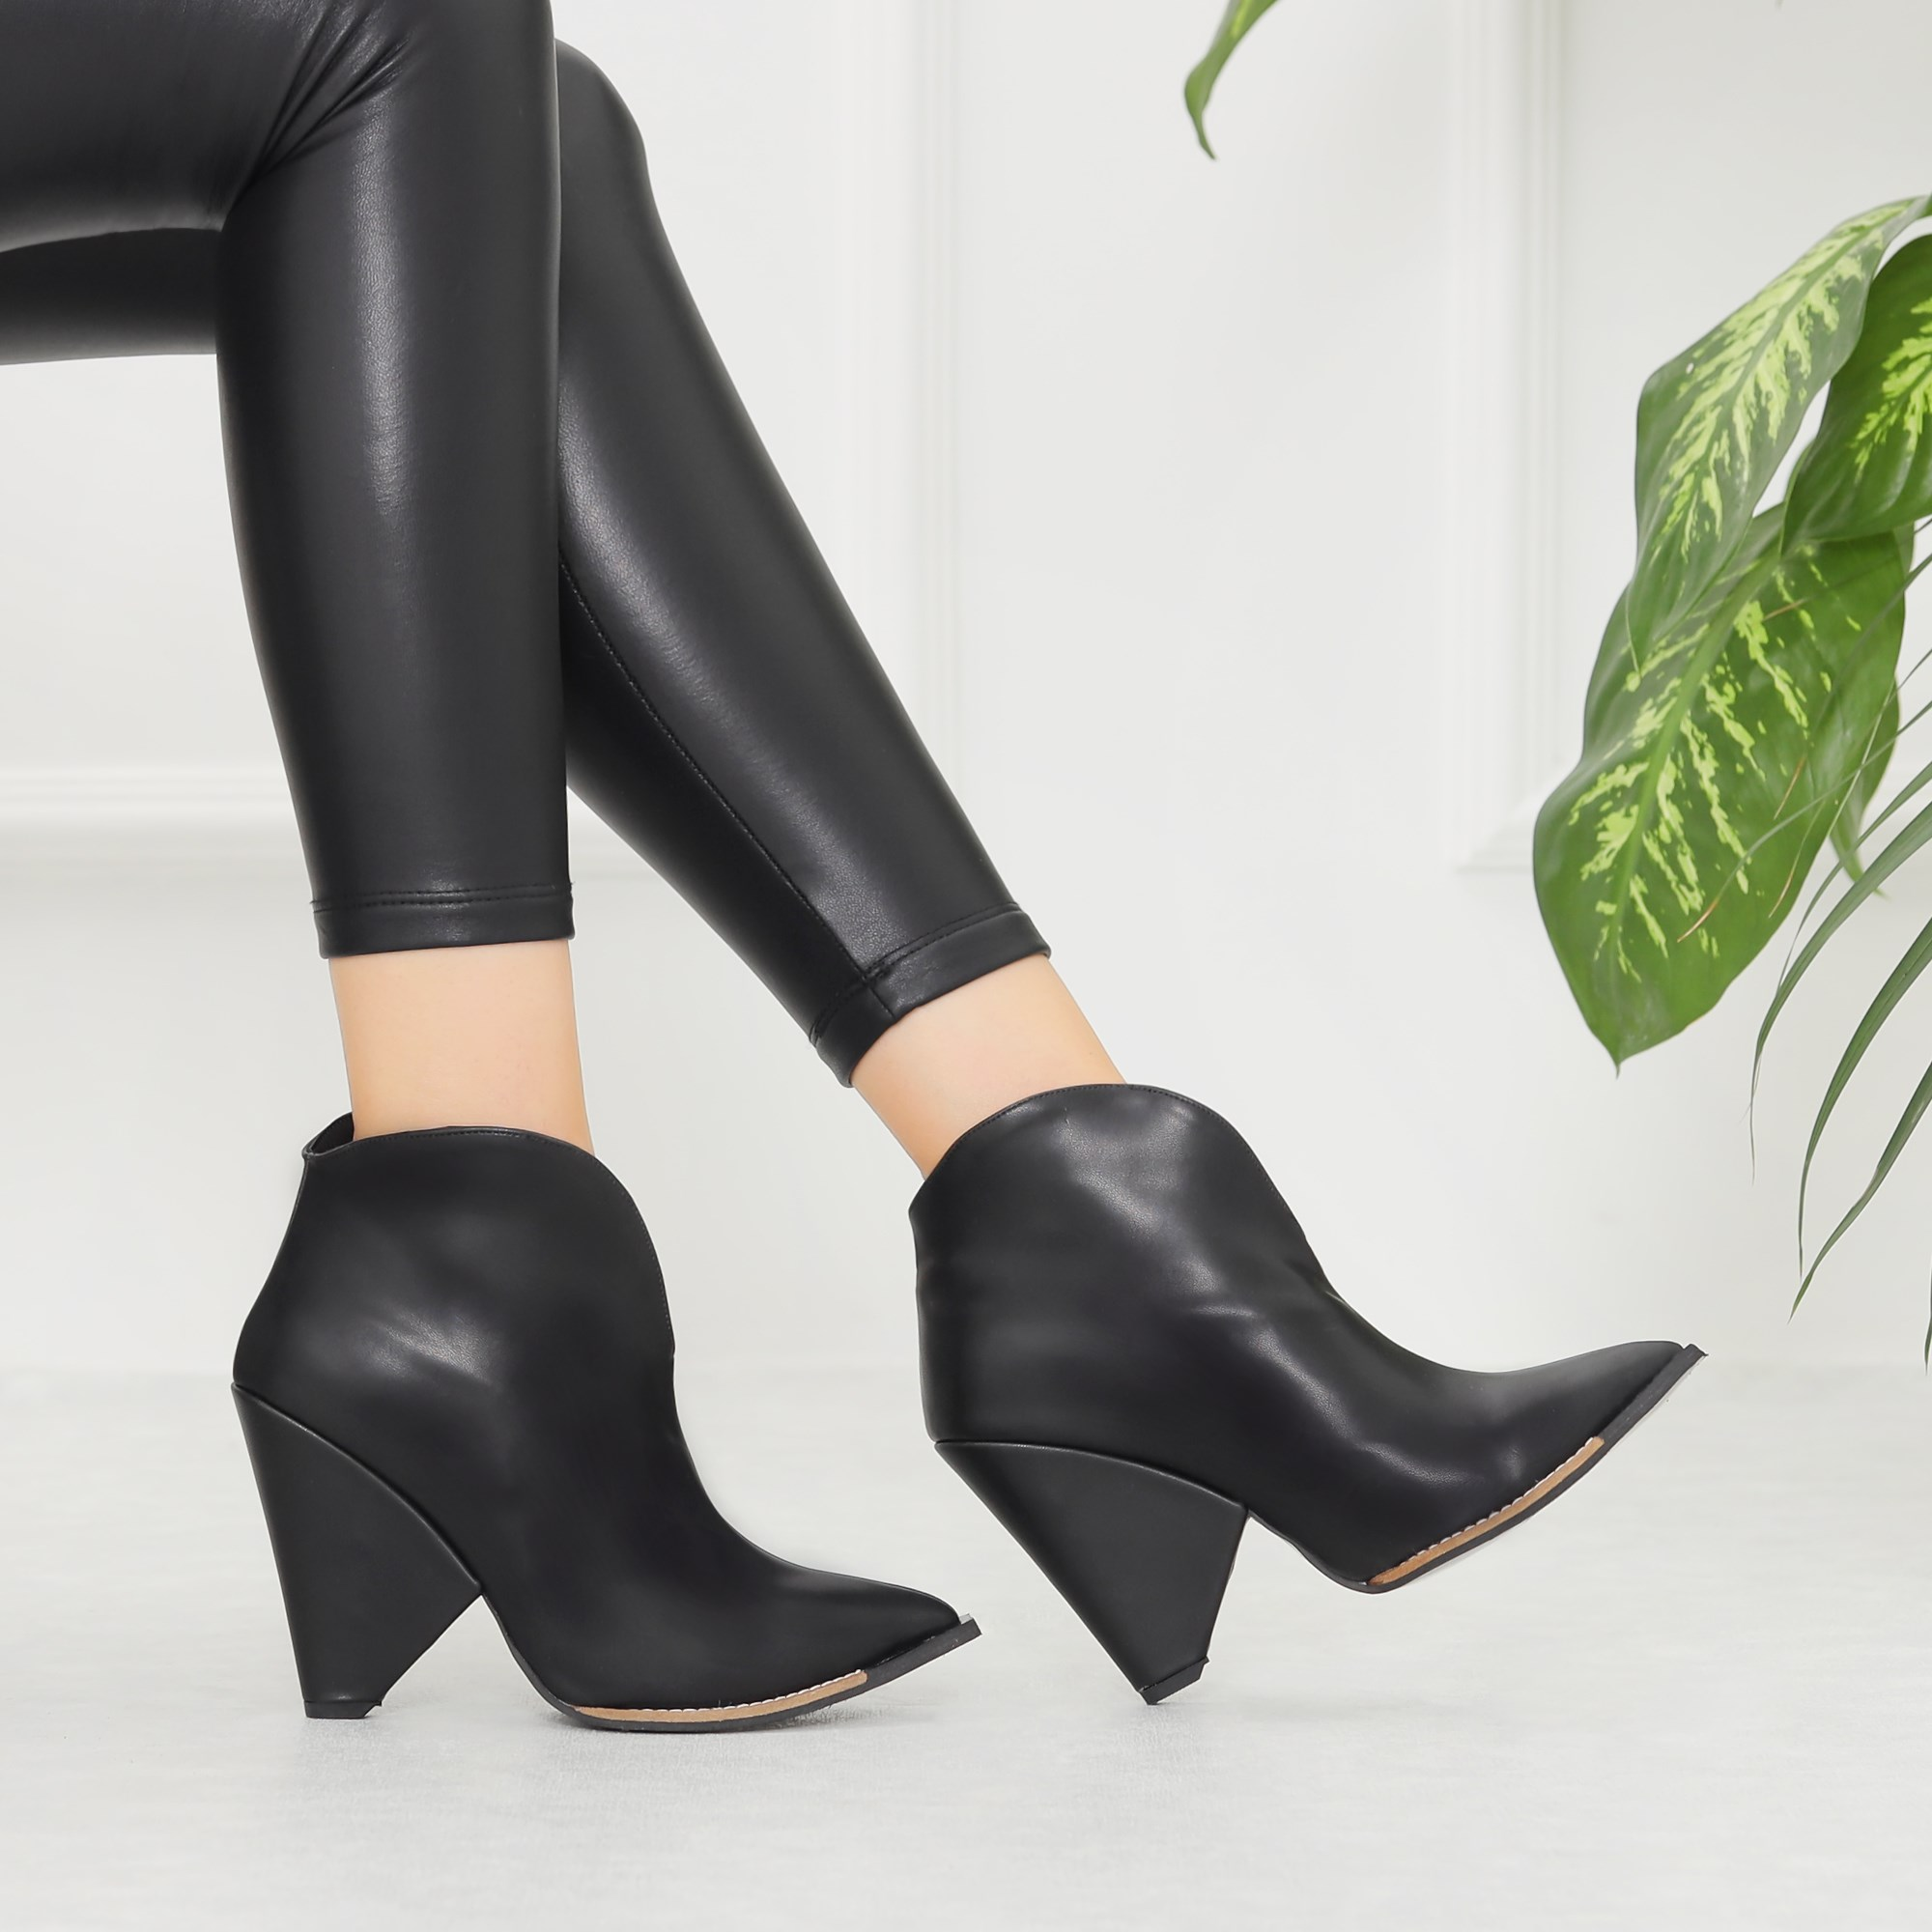 Merkel Black Thick Heels Pointed Toe Boots